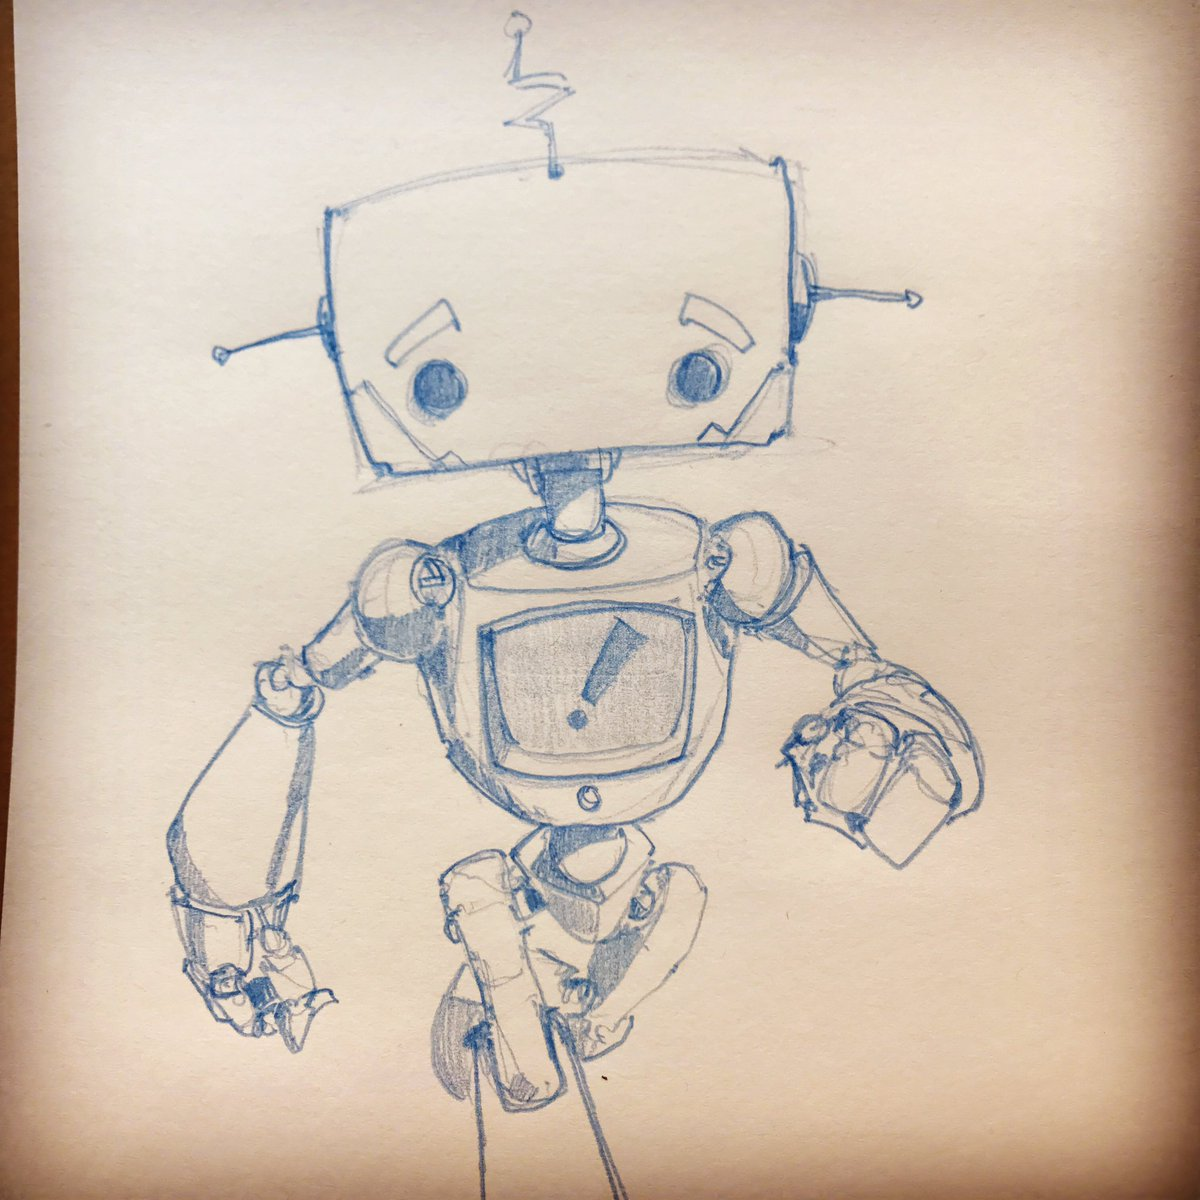 Action #robot #sketch #drawing #illustration #doodlebags #nashville #droid #art<br>http://pic.twitter.com/xGhbeZz0Cg